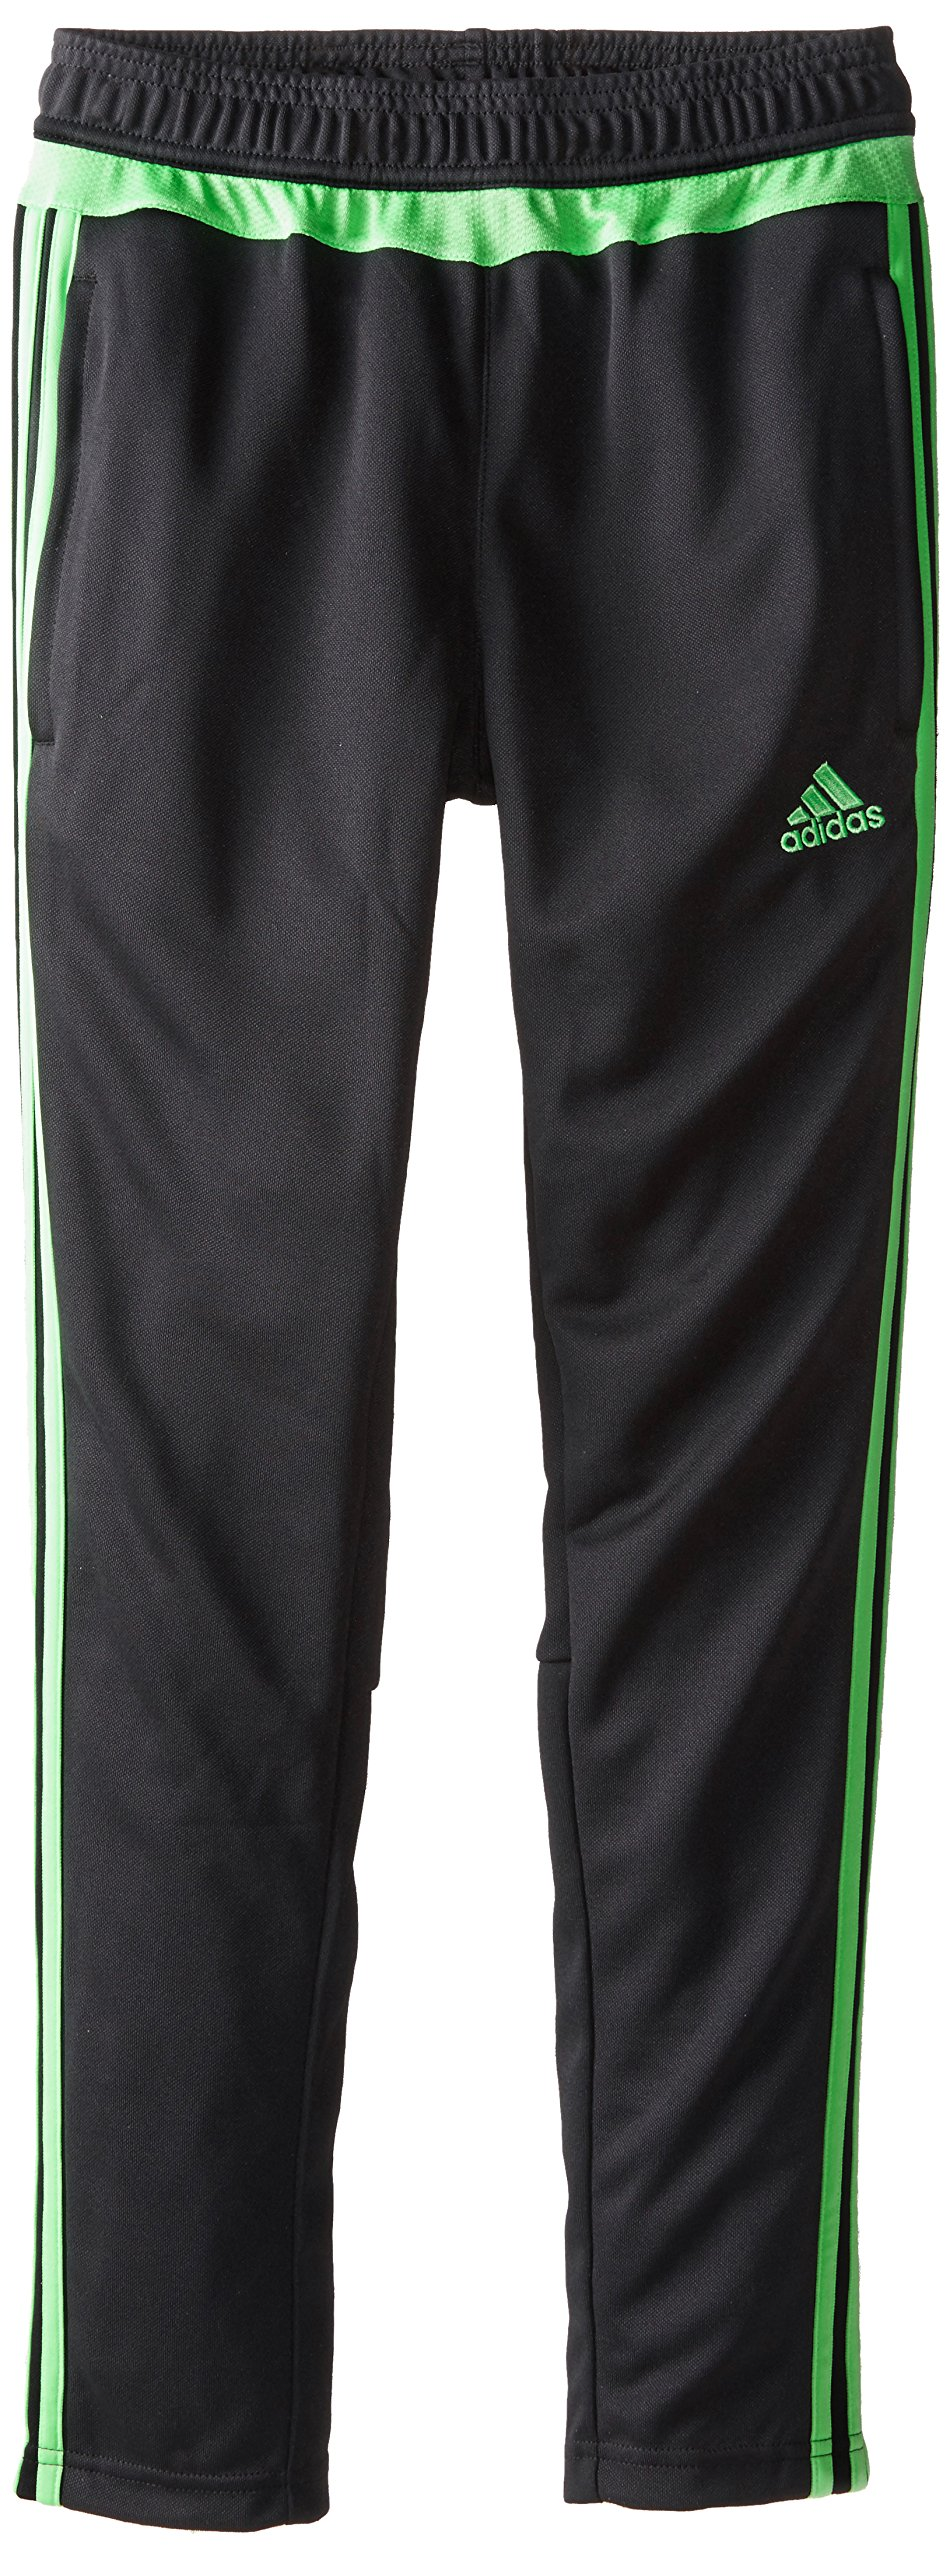 Cheap Adidas Tiro Training Pant, find Adidas Tiro Training